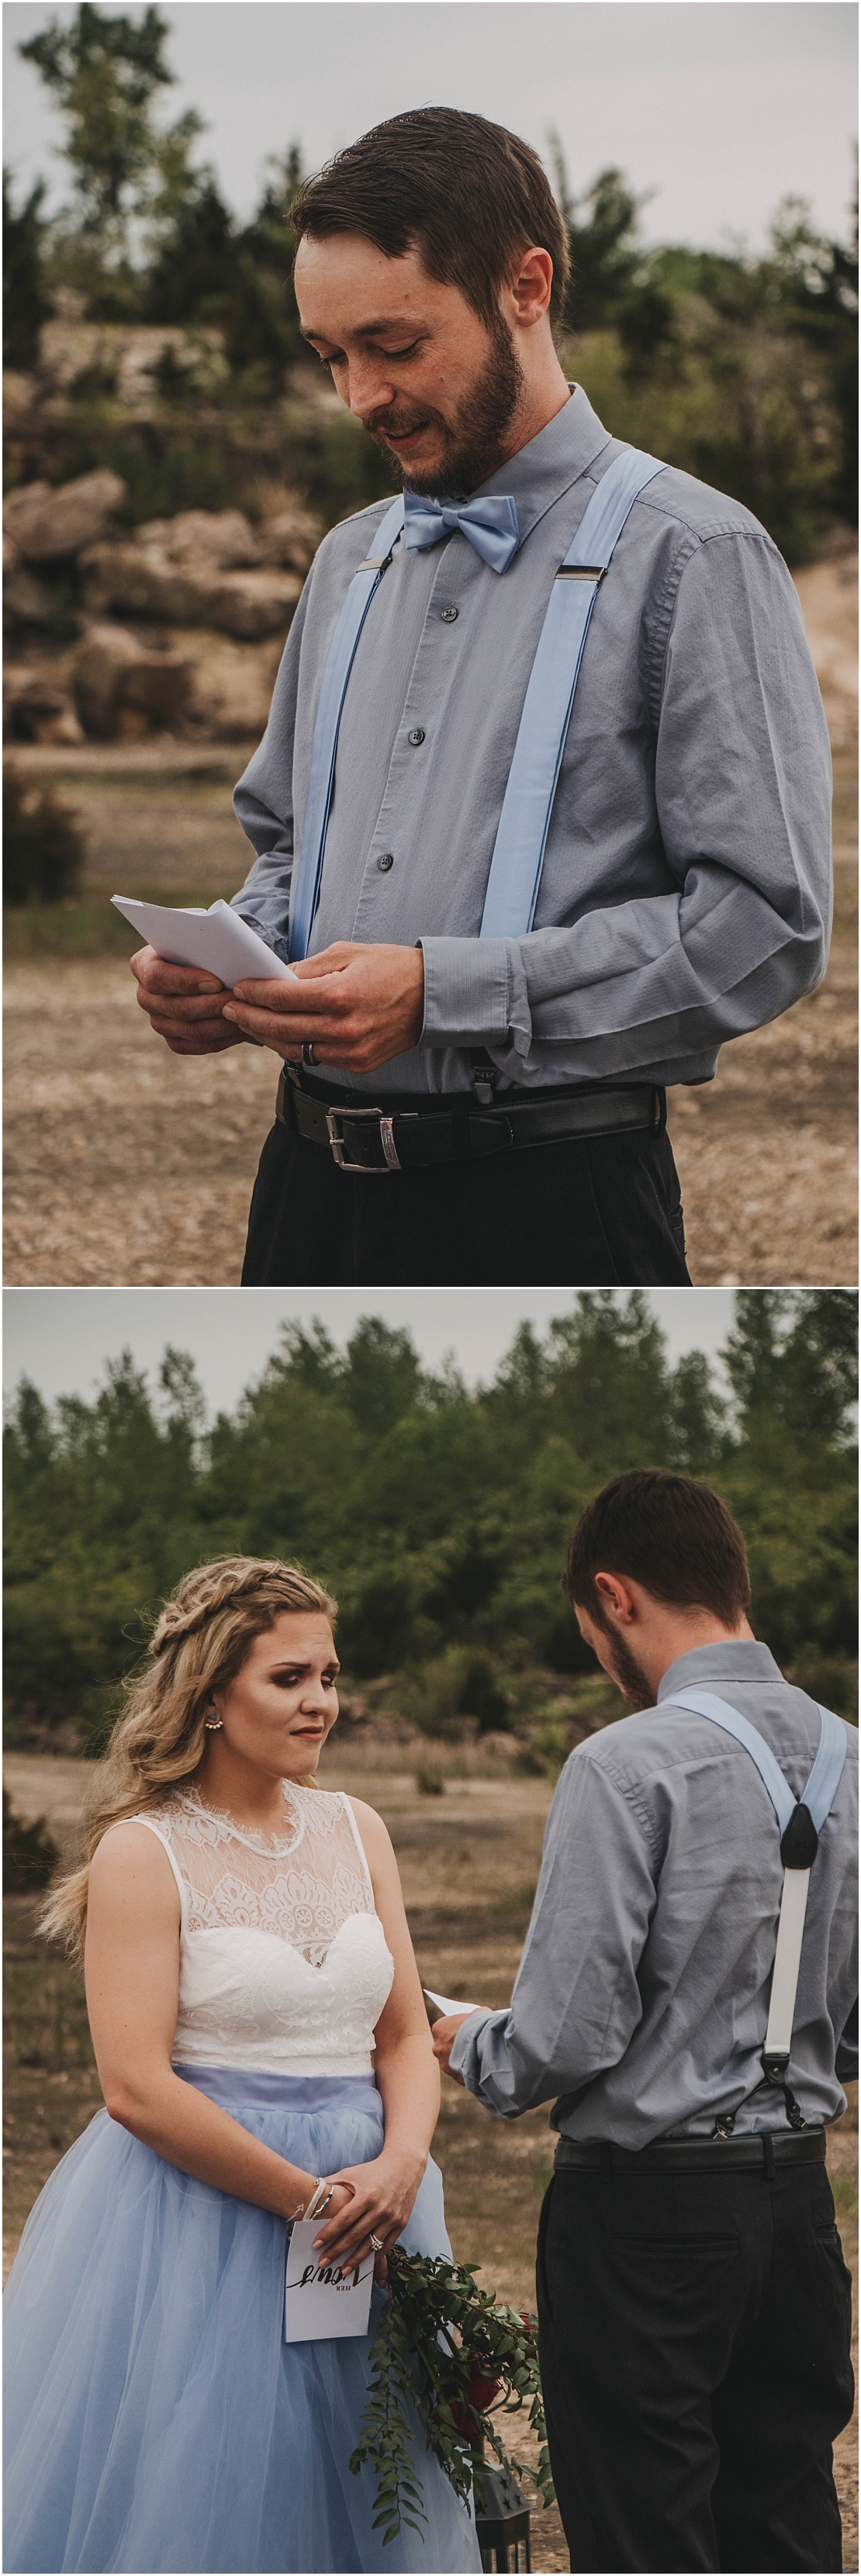 Desert Inspired Vow Renewal | Fairborn, Ohio